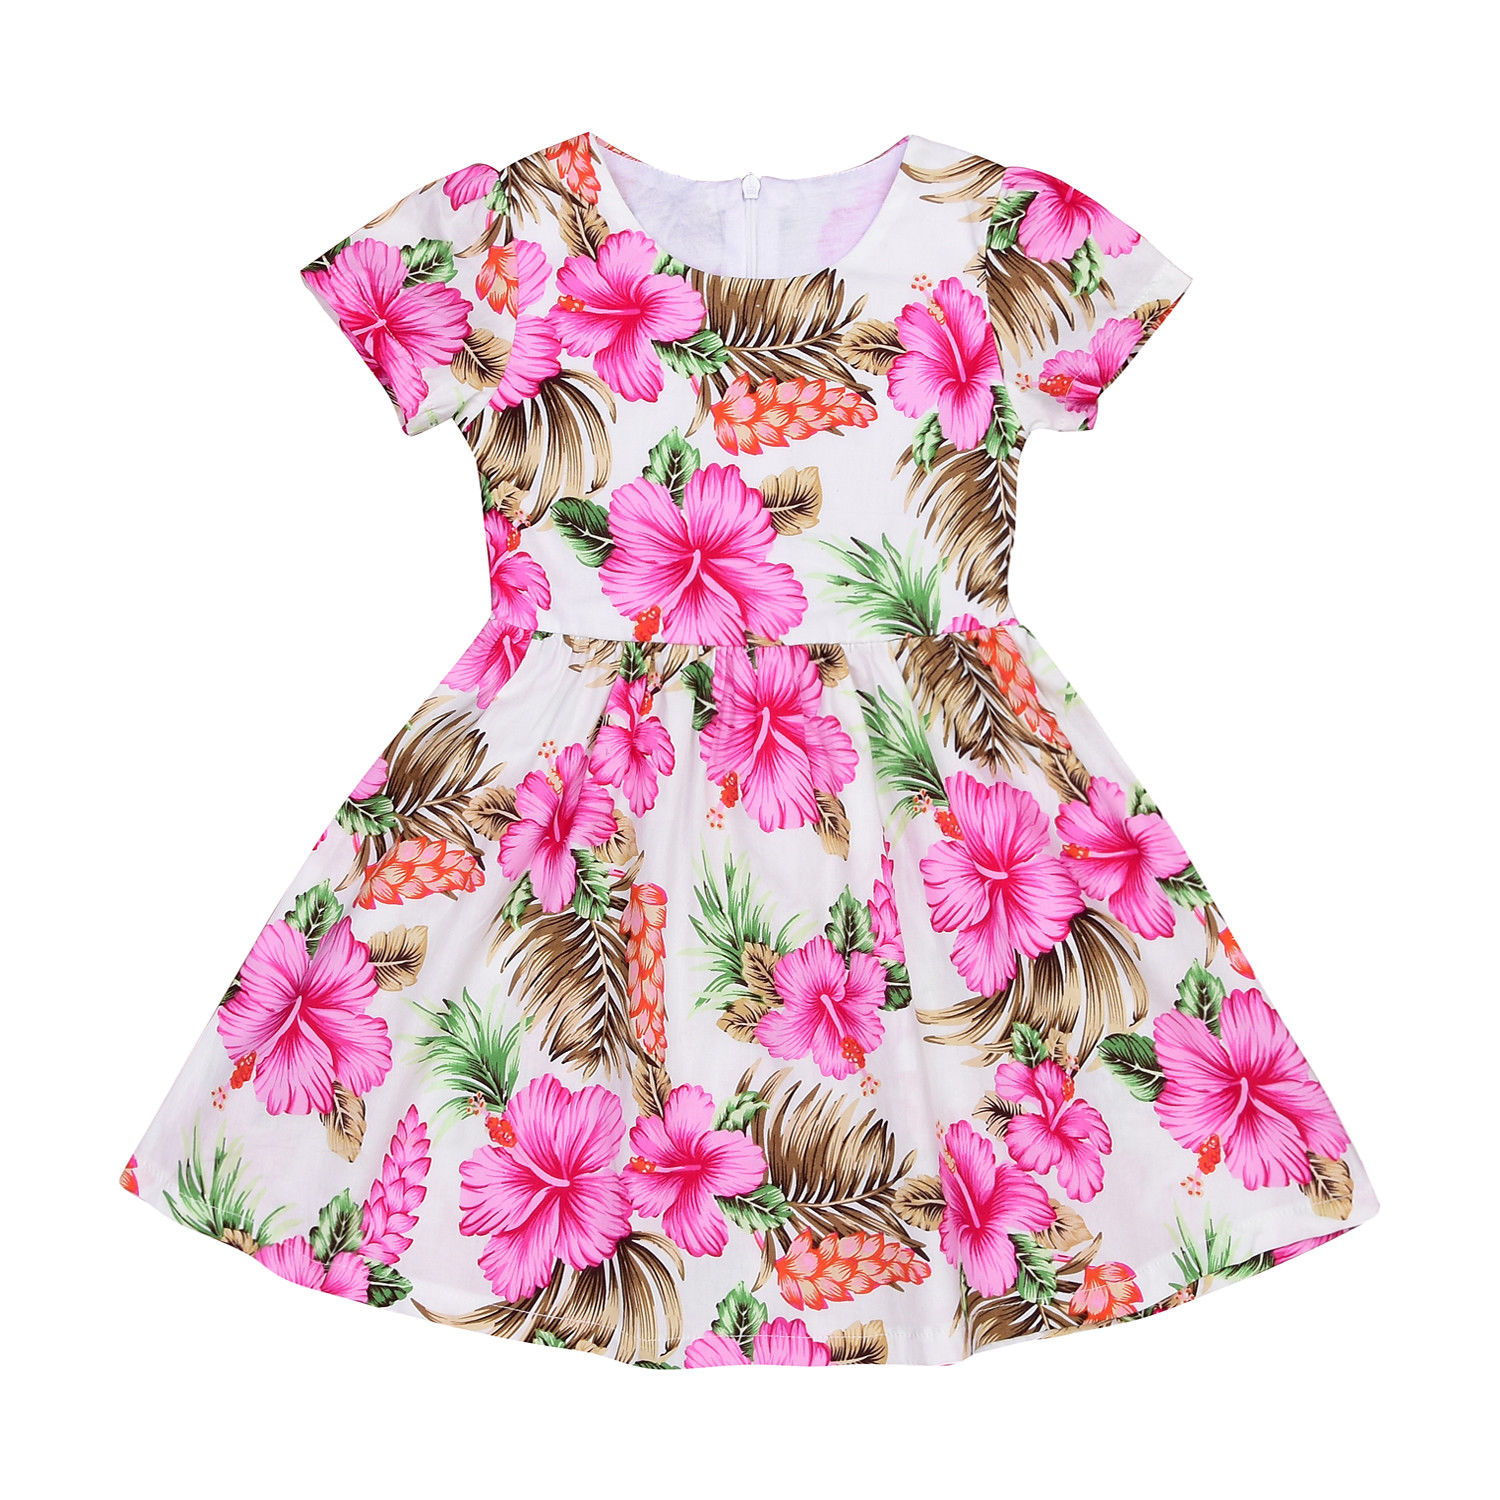 Flower Girl Flower Fancy Dress Kid Baby Party Wedding Pageant Clothes Dresses For Girls 15color available stone beaded baby girl clothes baby pageant dress girl party dresses flower girl dresses 1t 6t g079